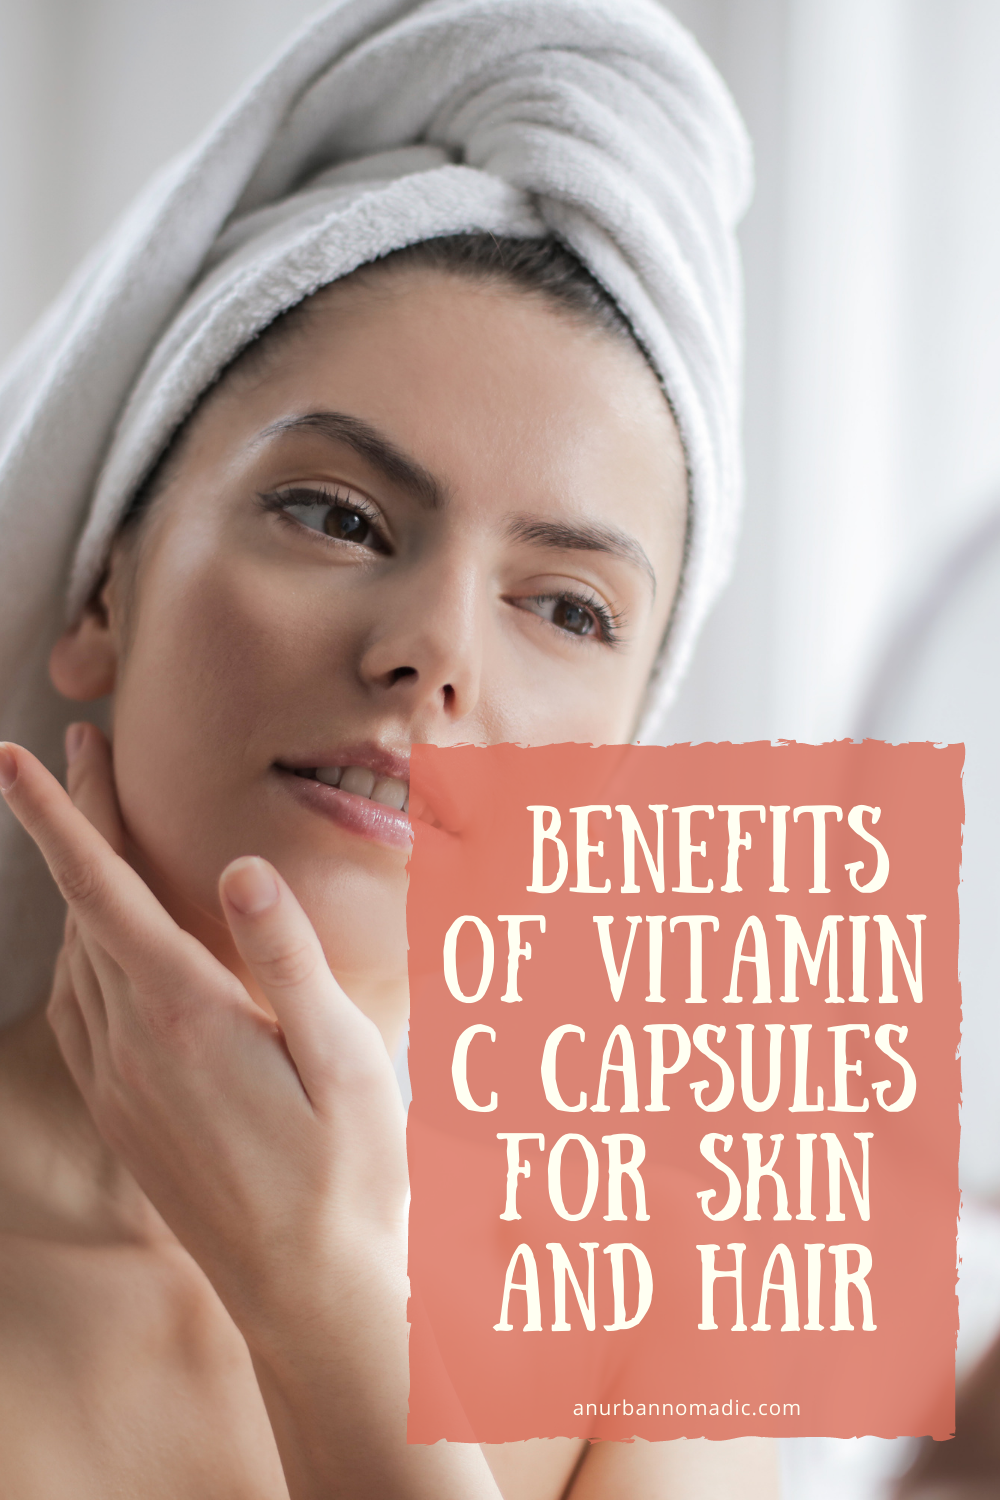 The Benefits of Vitamin C Capsules for Skin and Hair